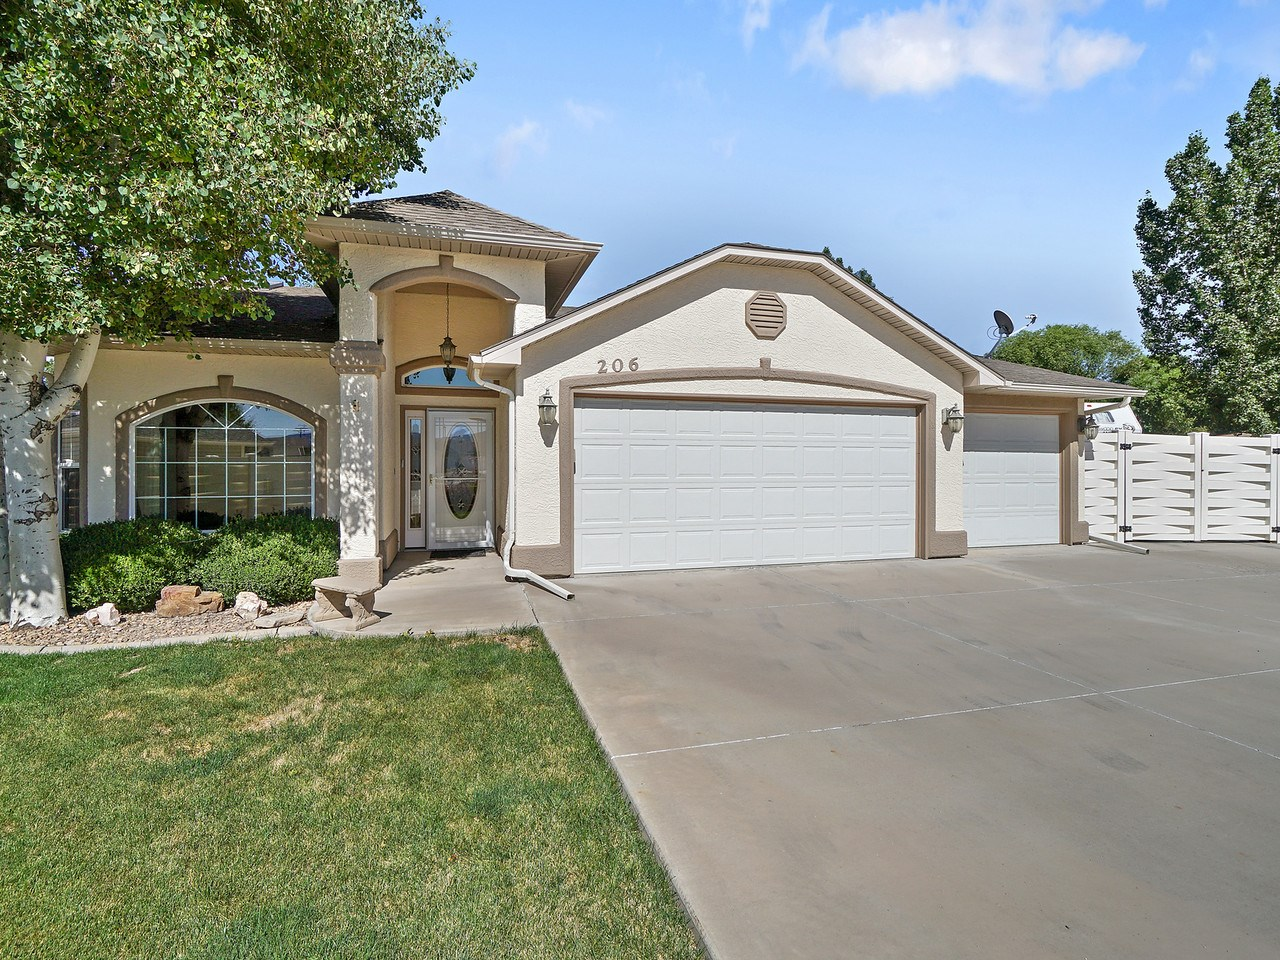 Move-in ready stucco ranch home